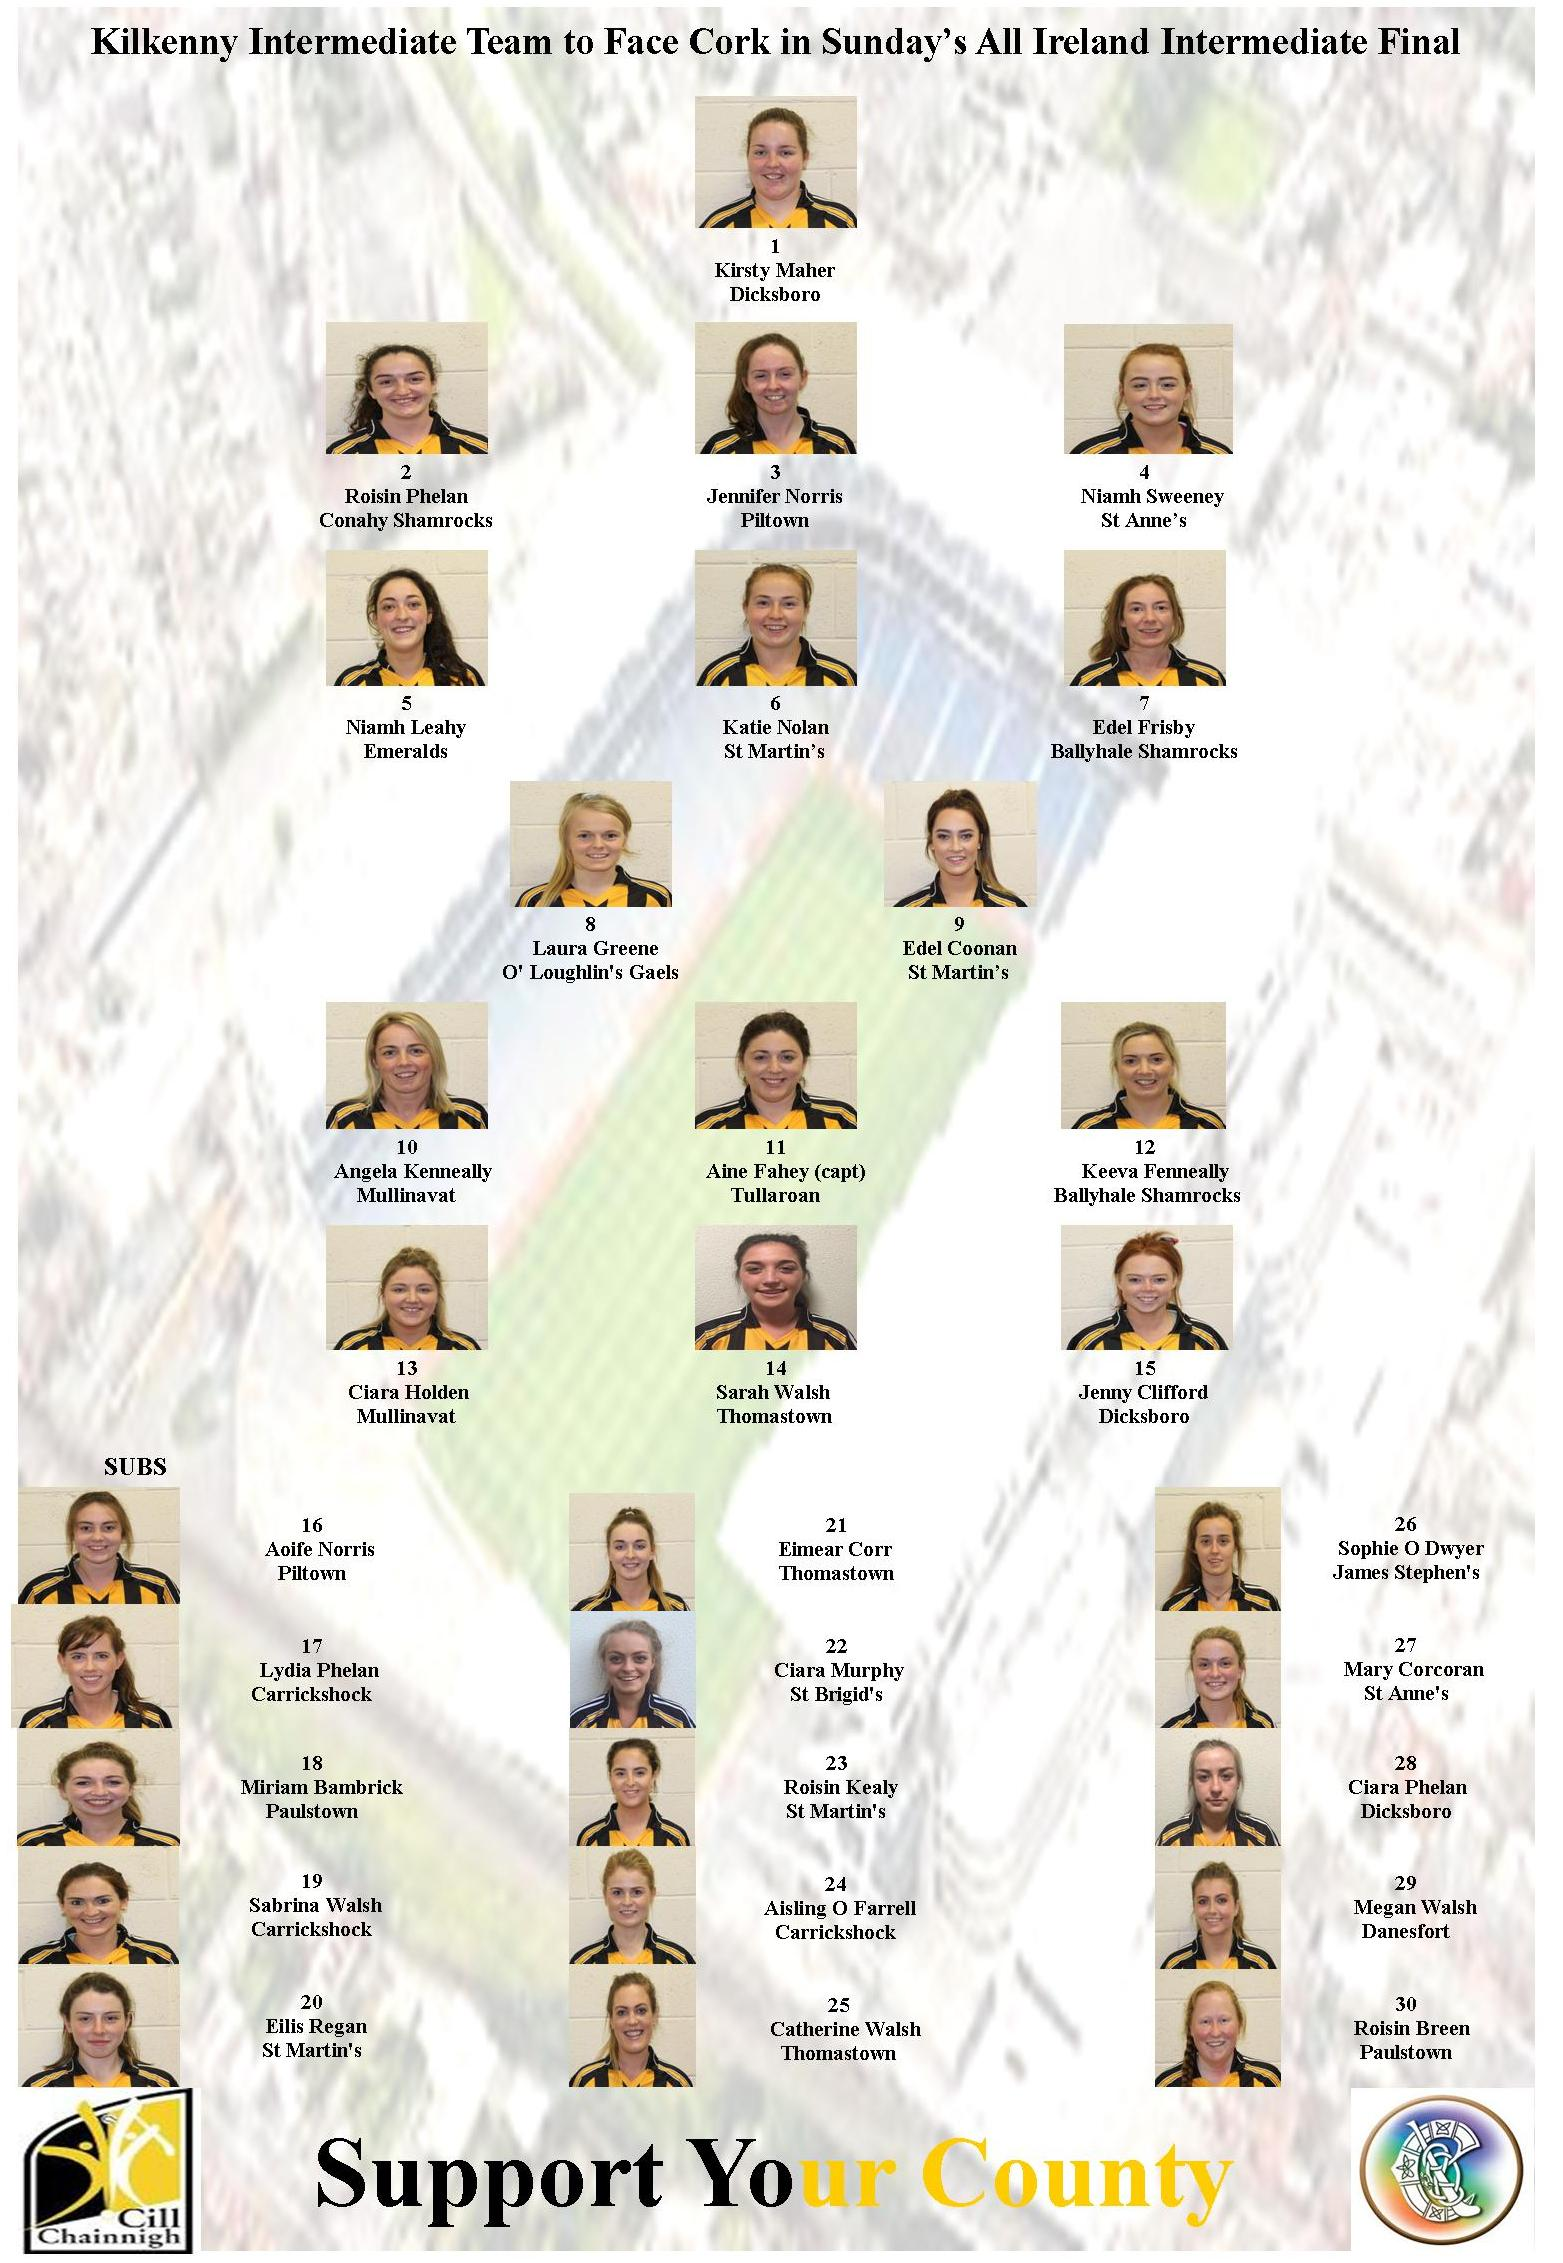 Kilkenny Intermedaite Team